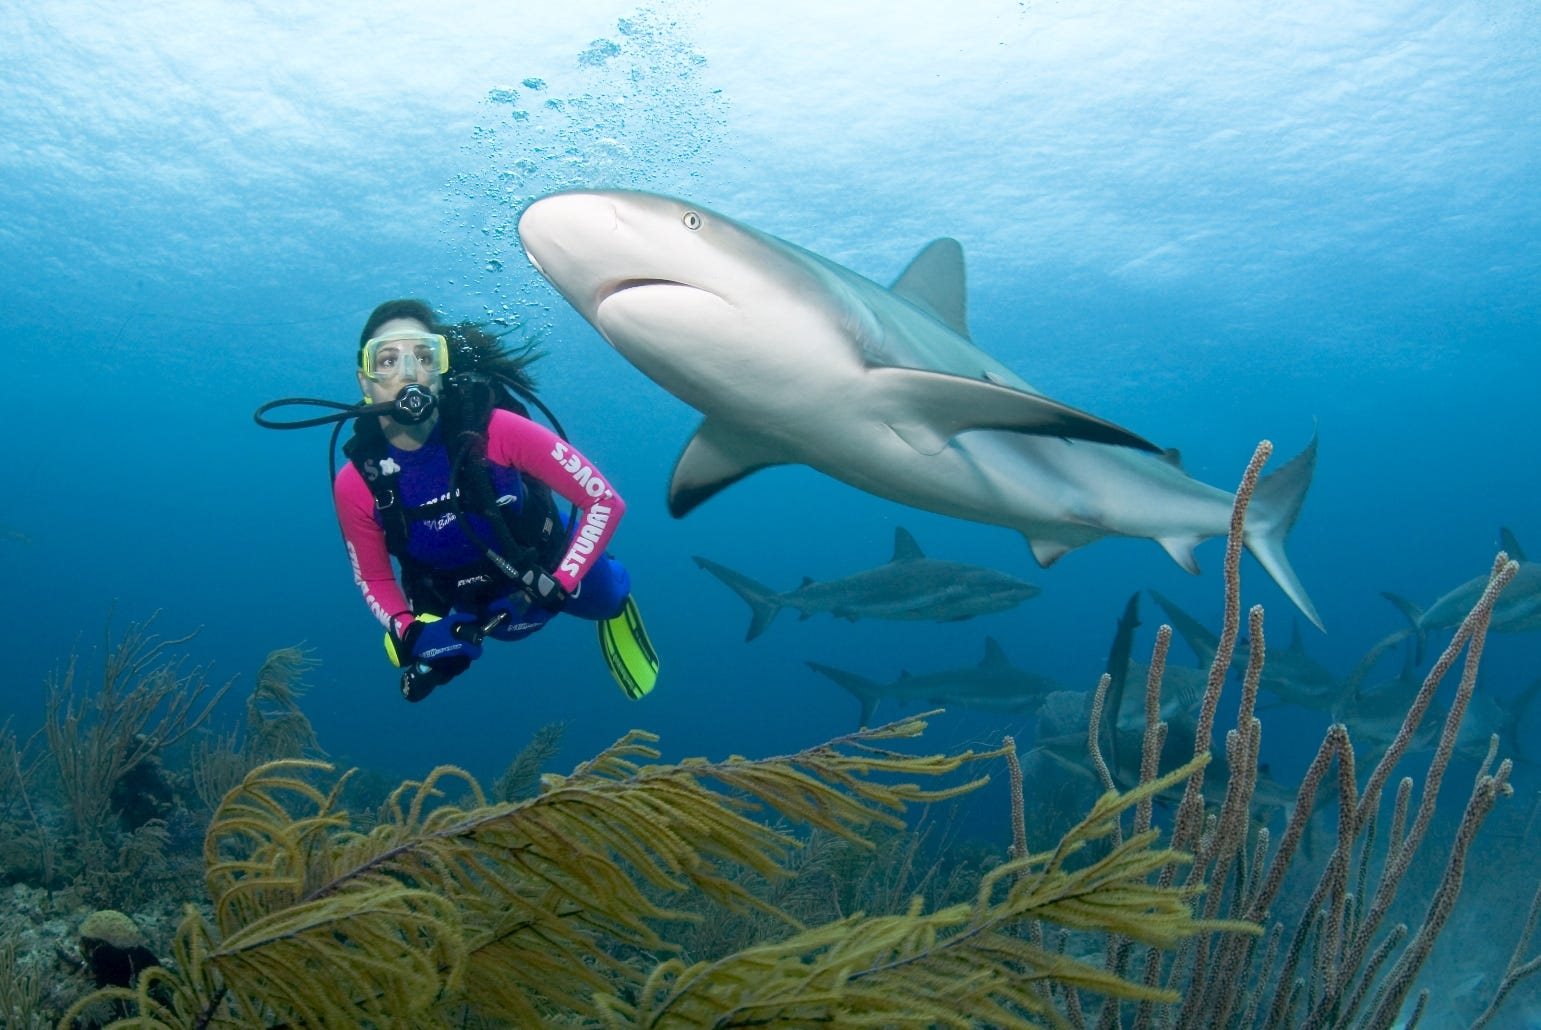 10 great places to celebrate Shark Week, from Alaska to Rhode Island